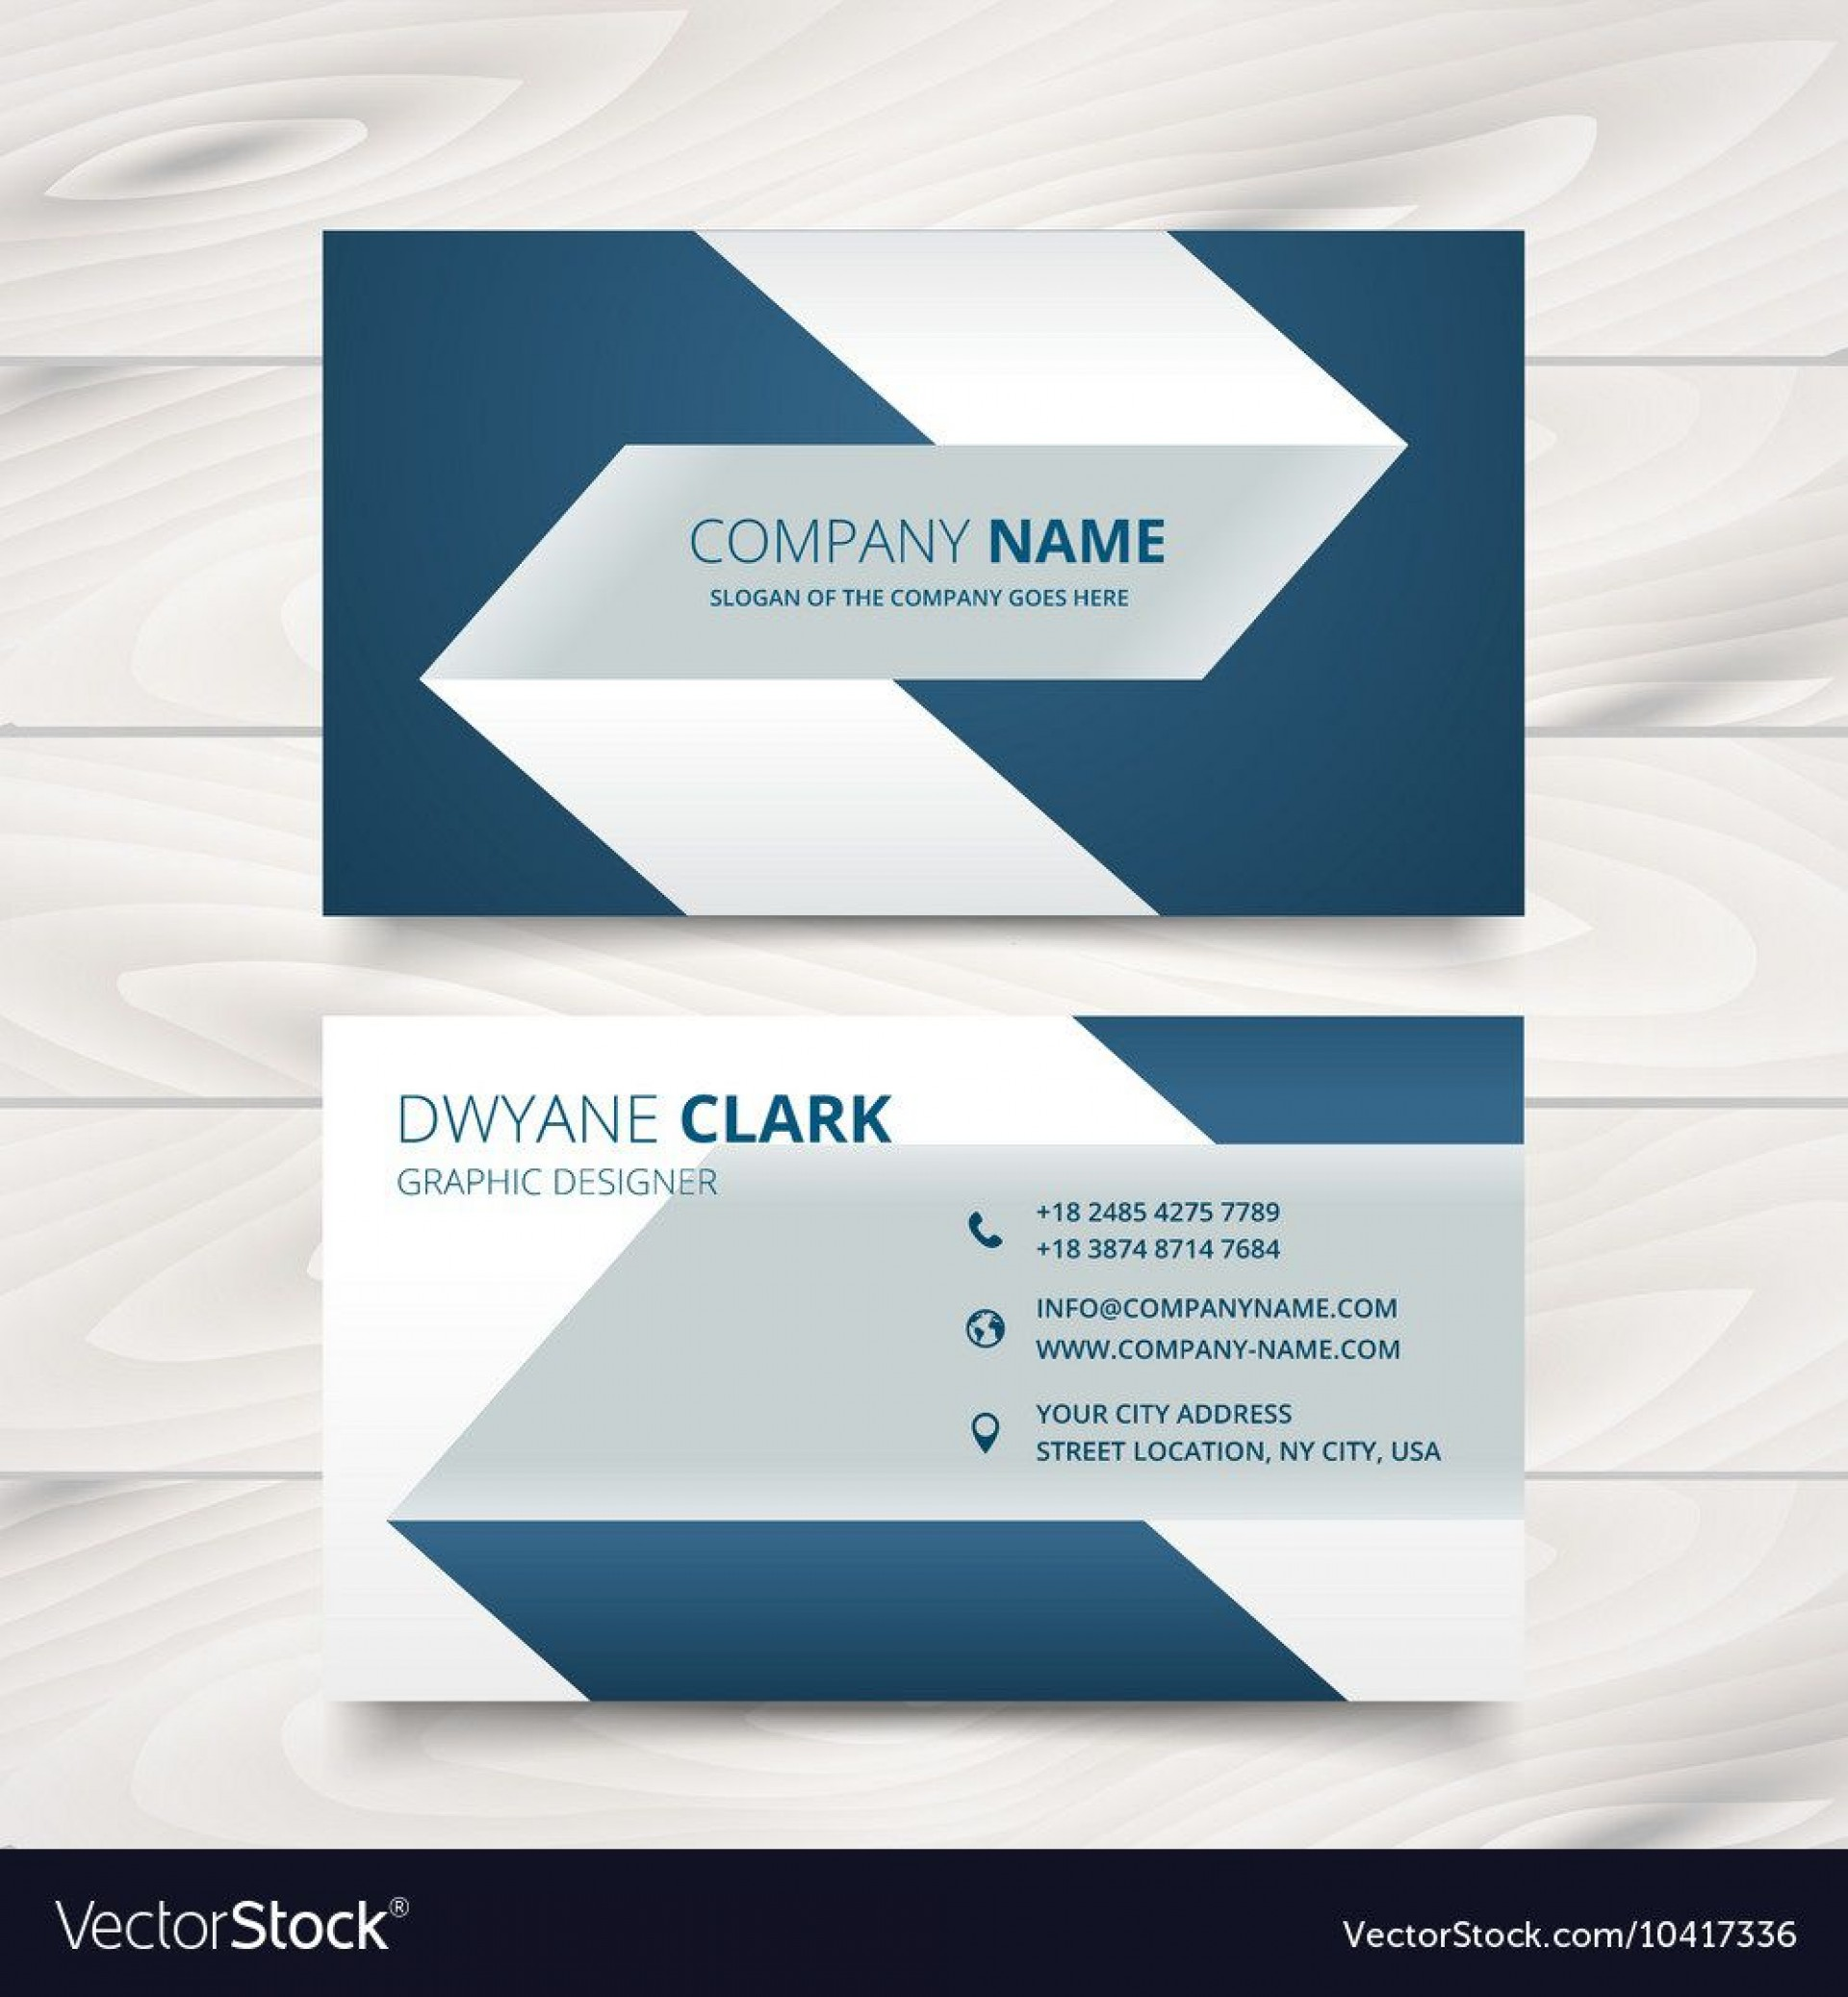 005 Impressive Simple Visiting Card Template Highest Quality  Templates Busines Psd Design File Free Download1920